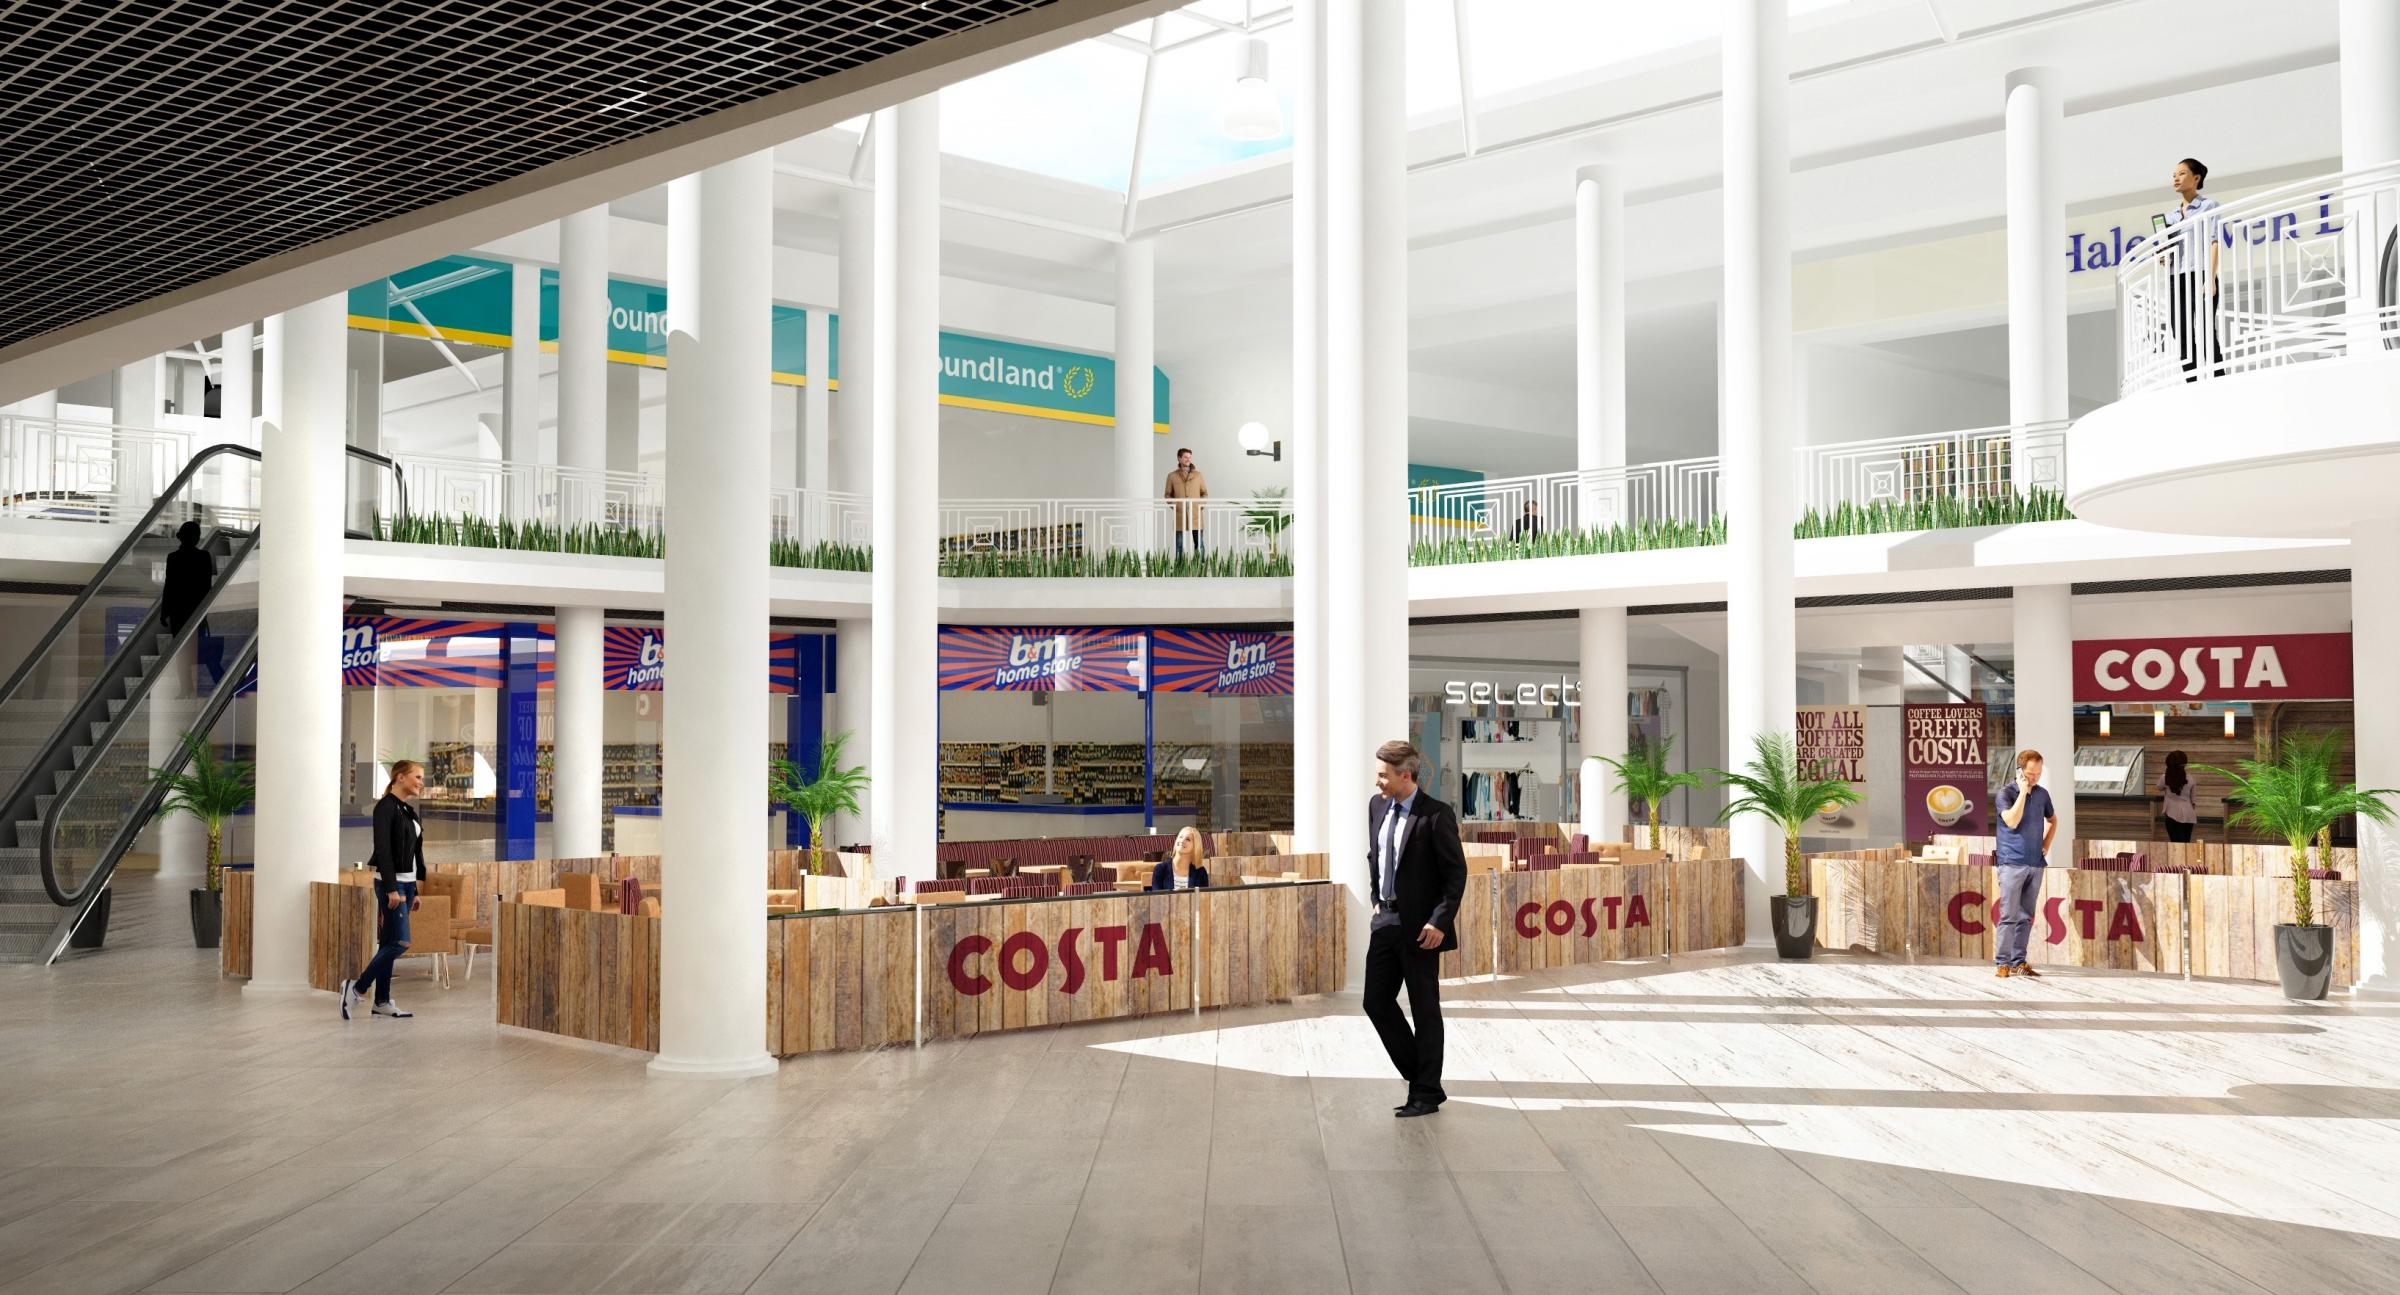 How the Cornbow Shopping Centre will look with the new stores